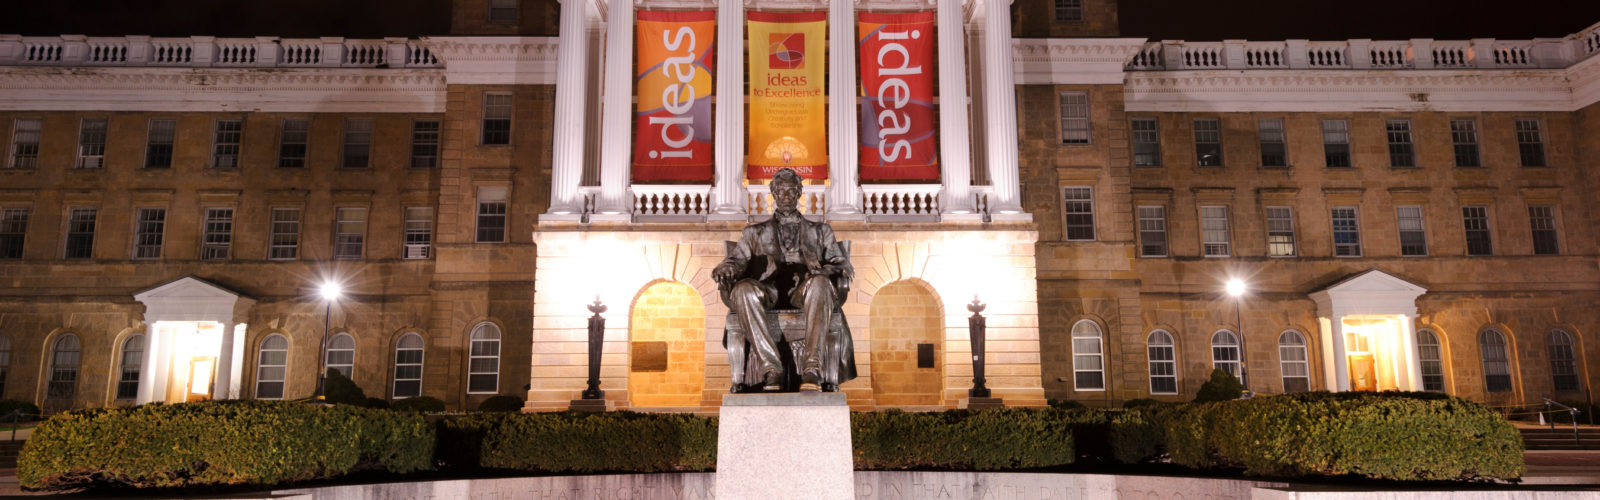 Abraham Lincoln statue in front of Bascom Hall